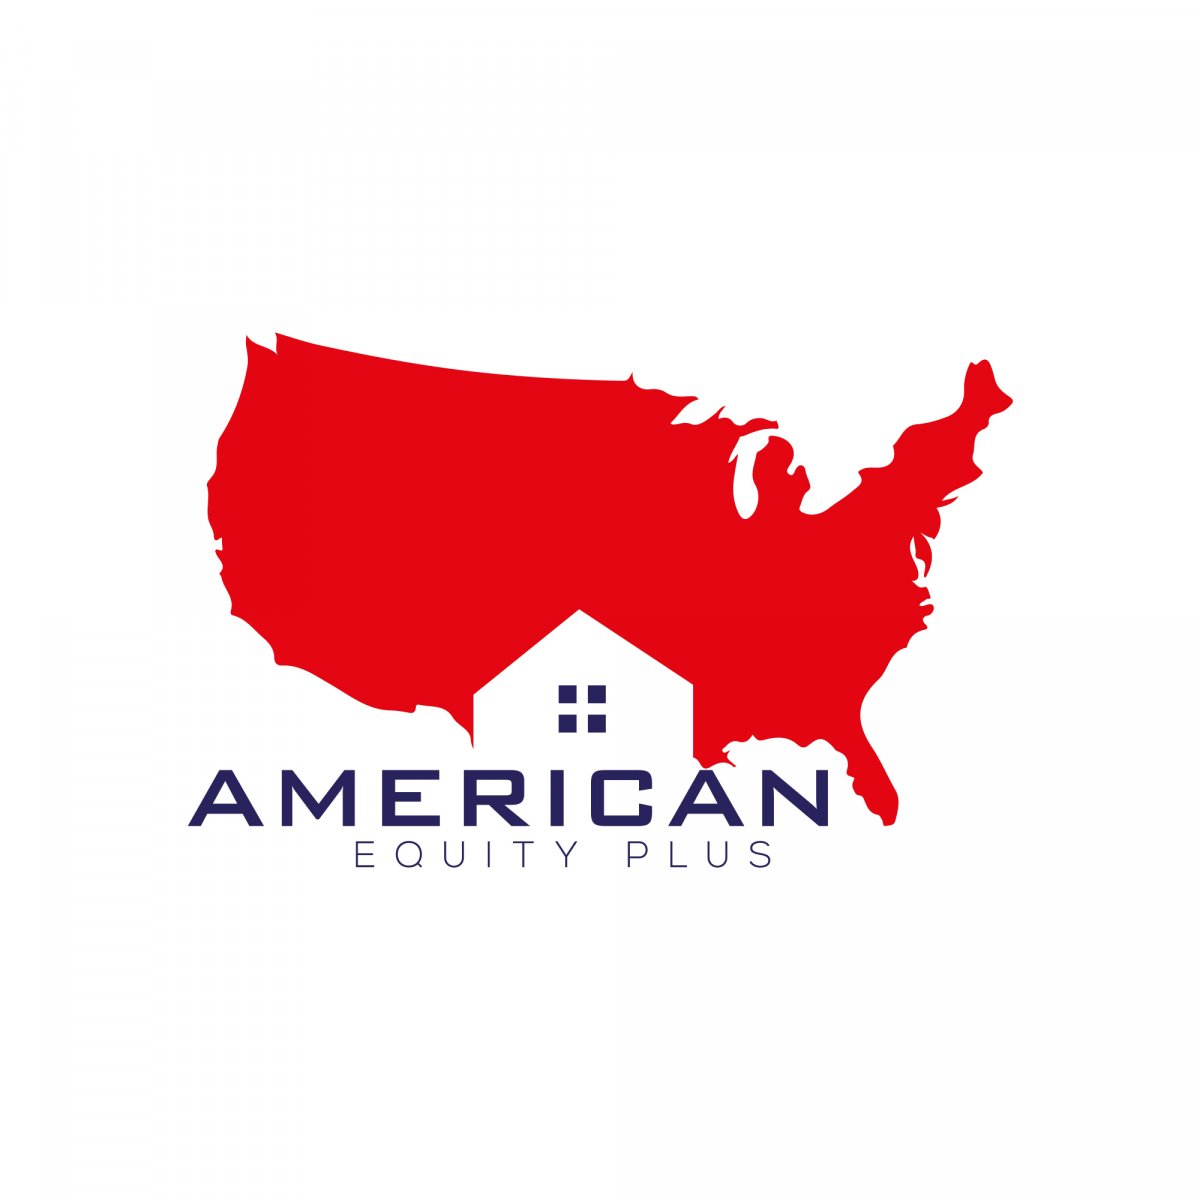 American Equity Plus logo